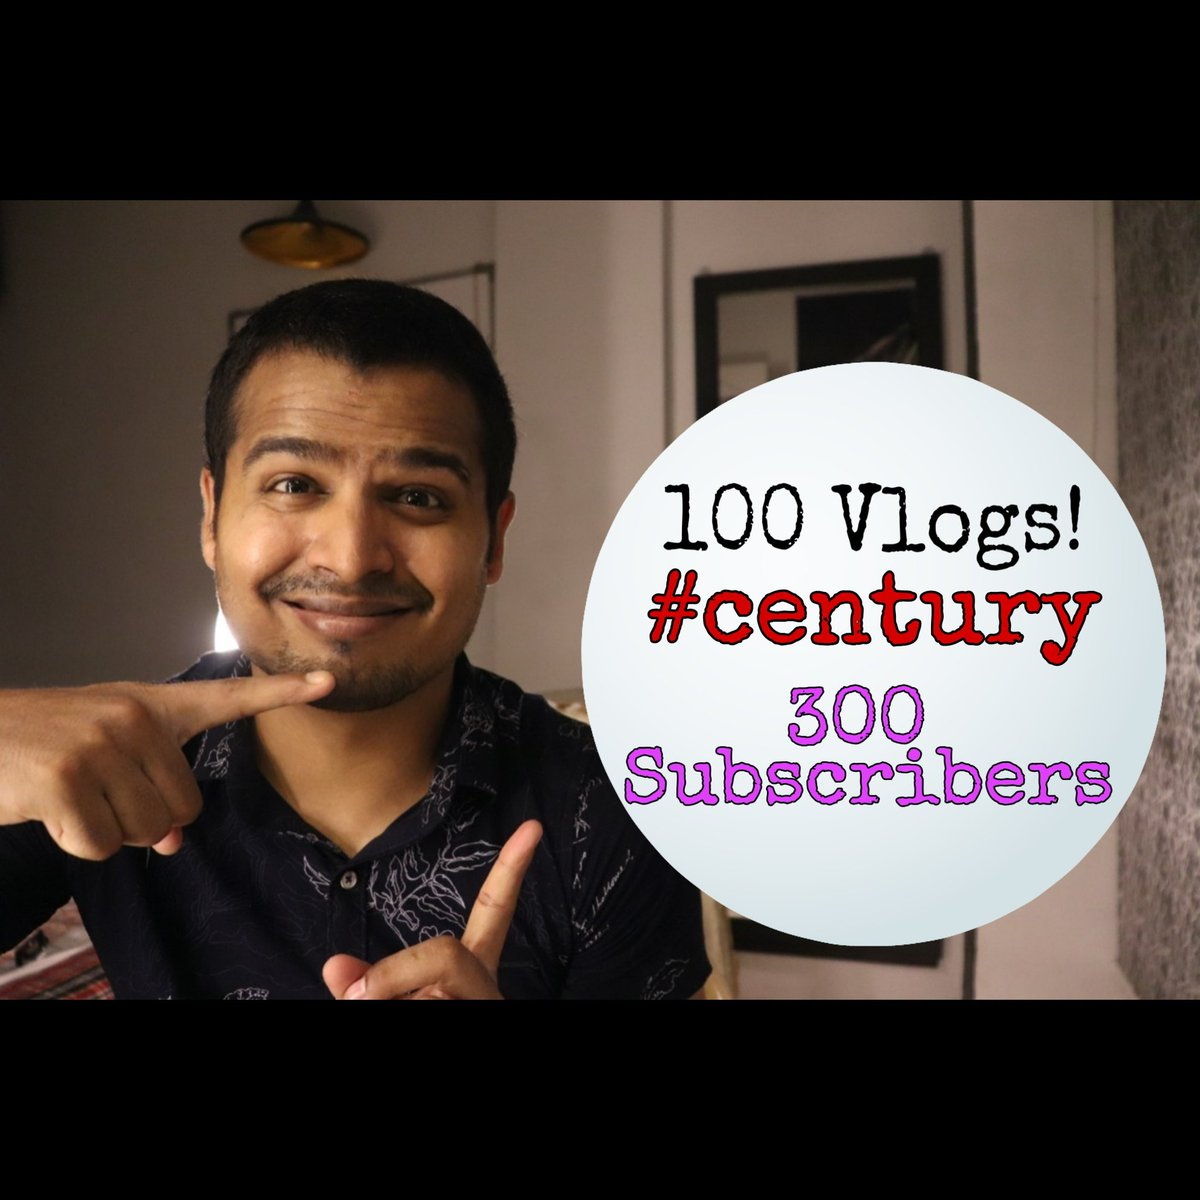 Yesterday I did a bit of modifications on my #workstations, It's the little things that Matter Thank you so Much for your support my lovelypeople It's a been a Journey! and just gets better from here..Vlog #comingoutday #thankyousubscribers #wolfstake  #youtubeindia<br>http://pic.twitter.com/IuLXmjIWoq